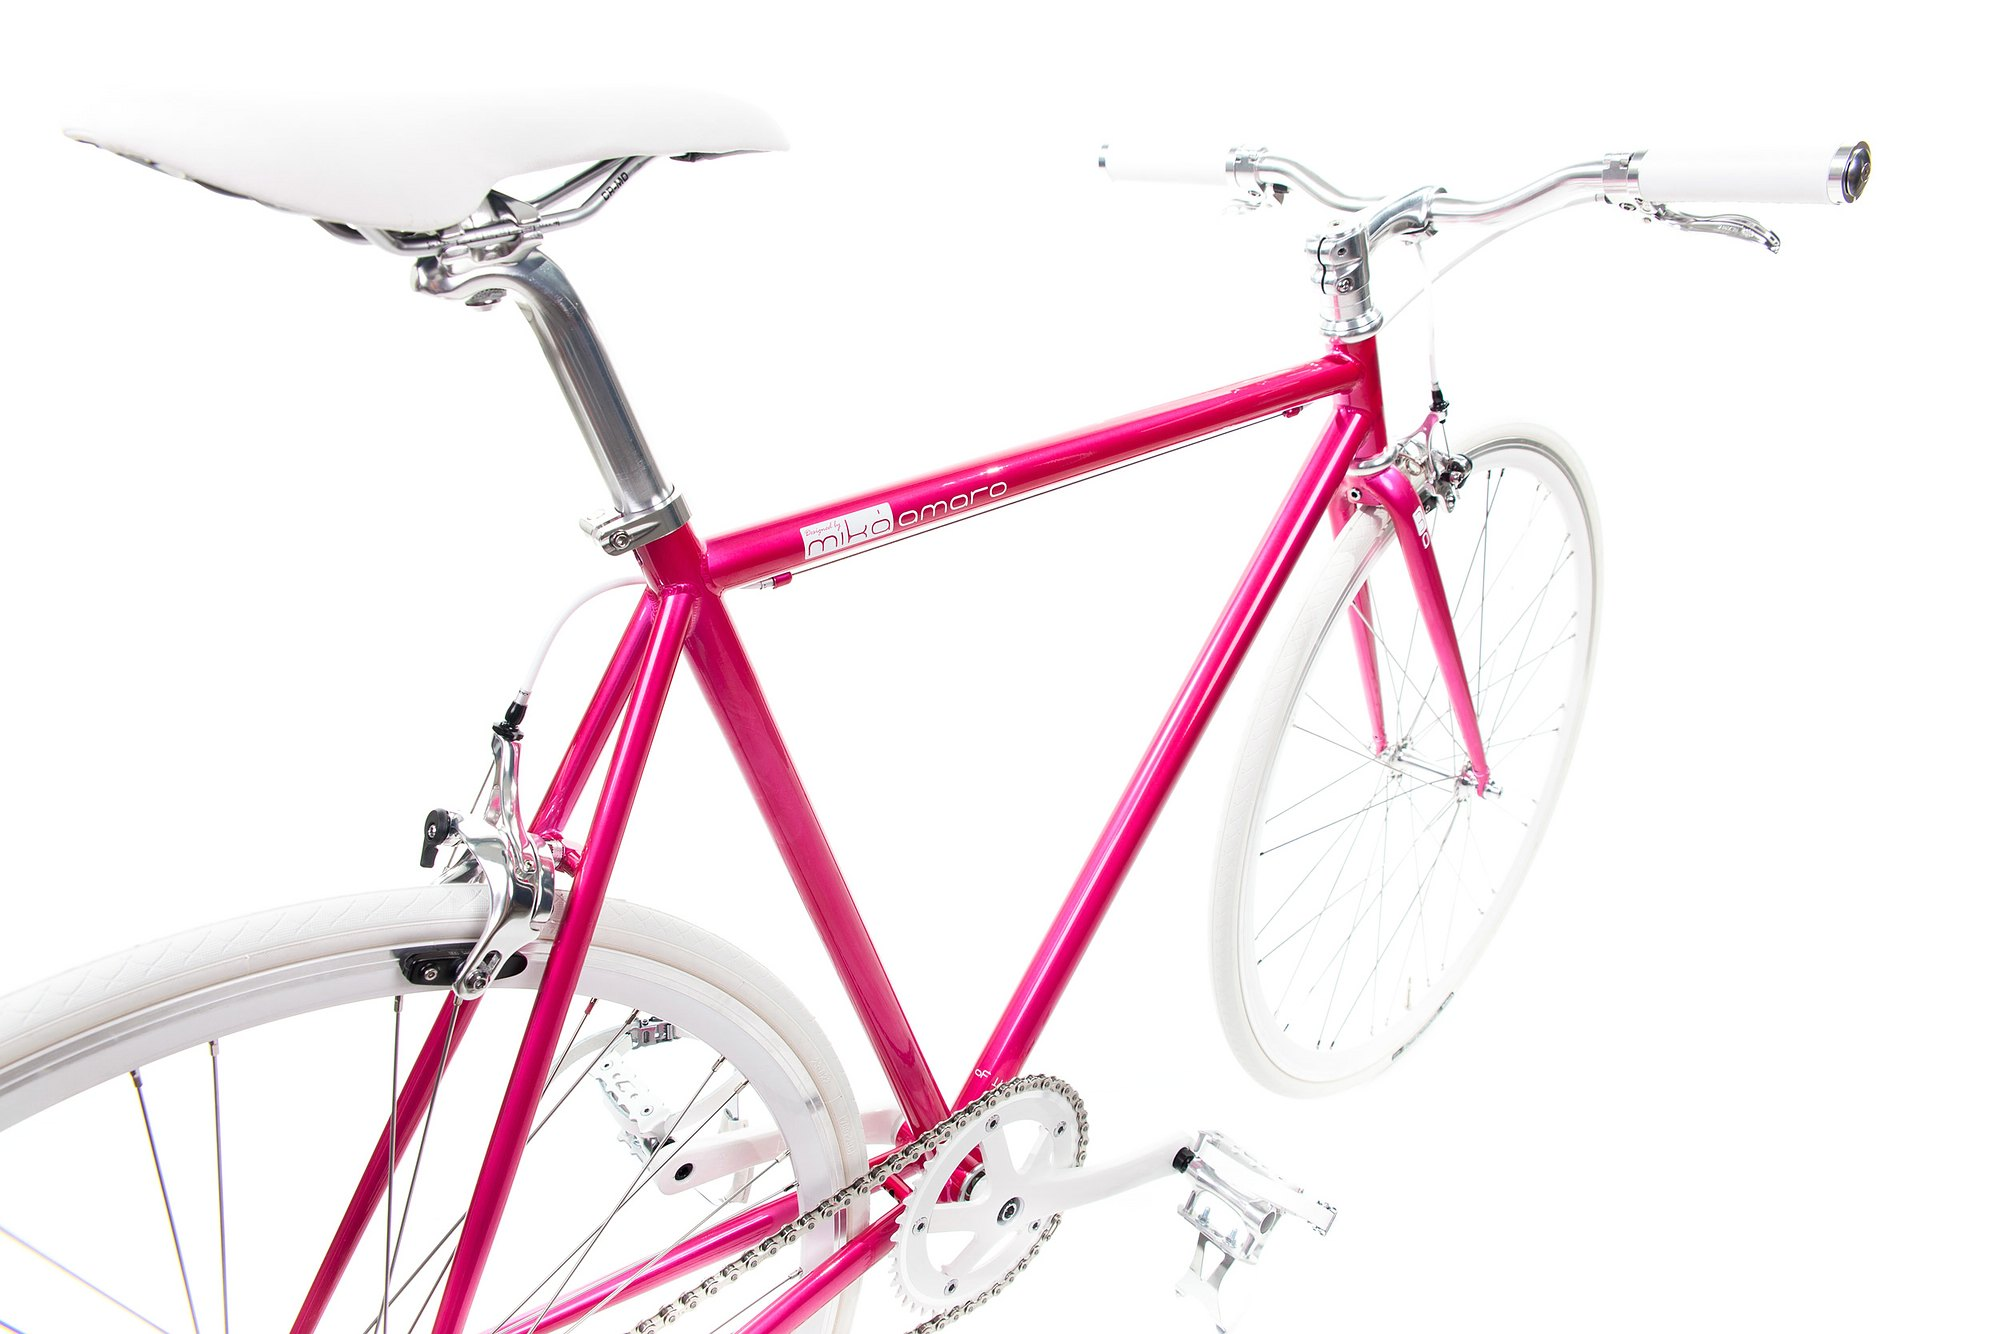 2 Speed Urban Bike dressy pink